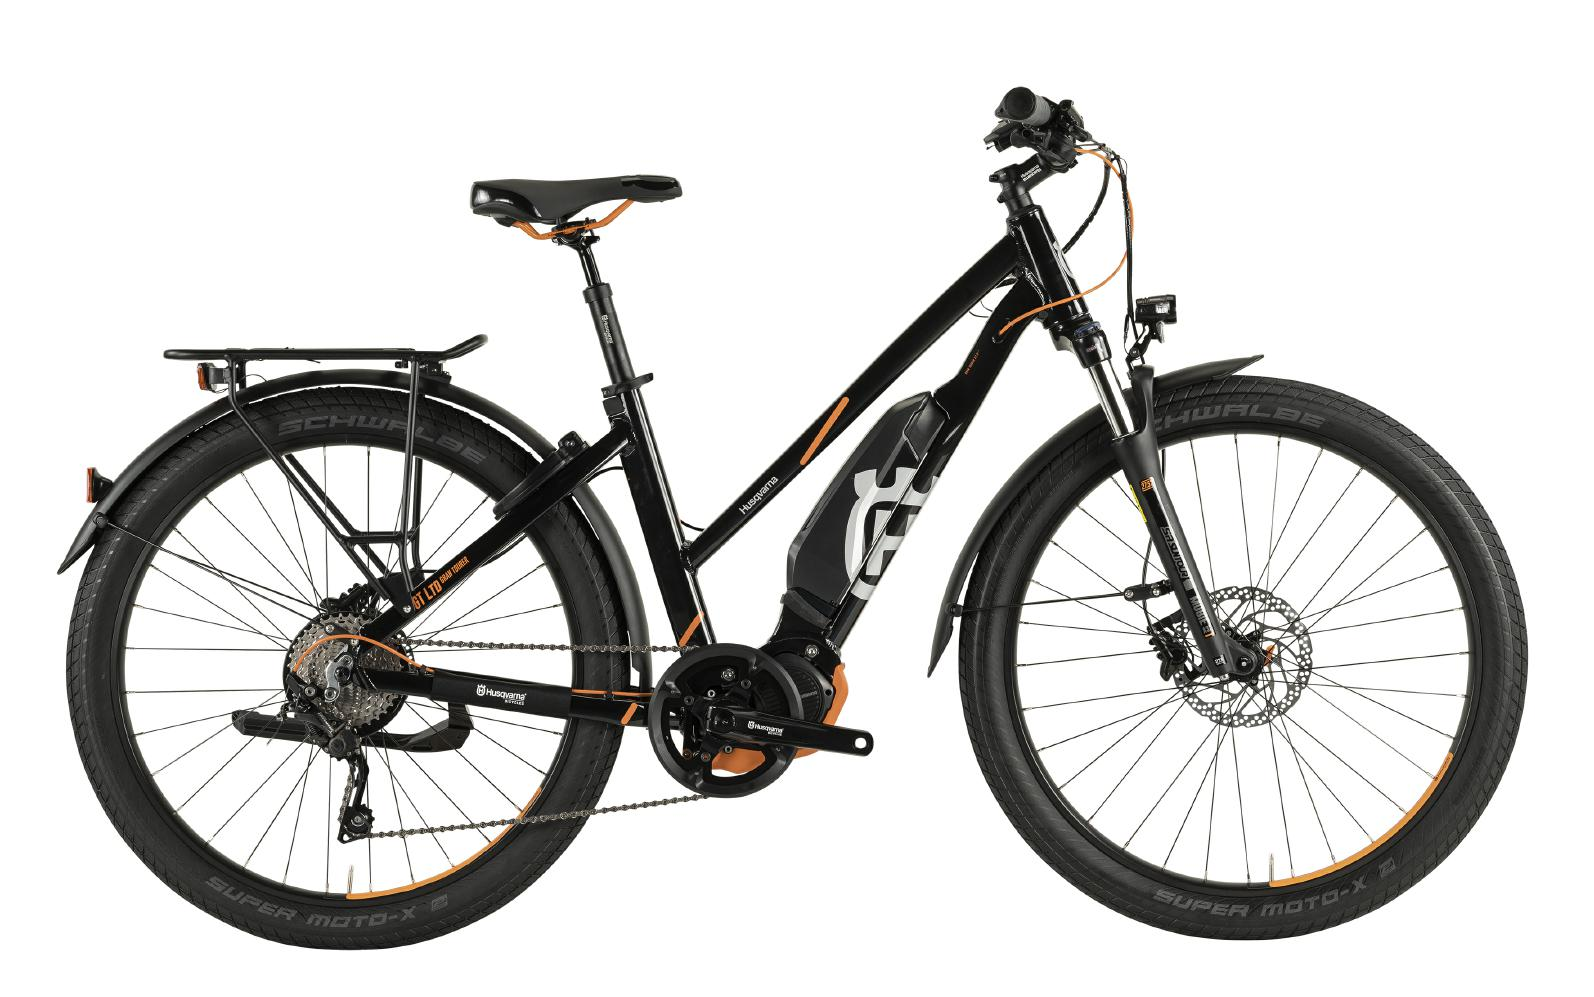 Husqvarna Gran Tourer Anniversary Model GT LTD - black